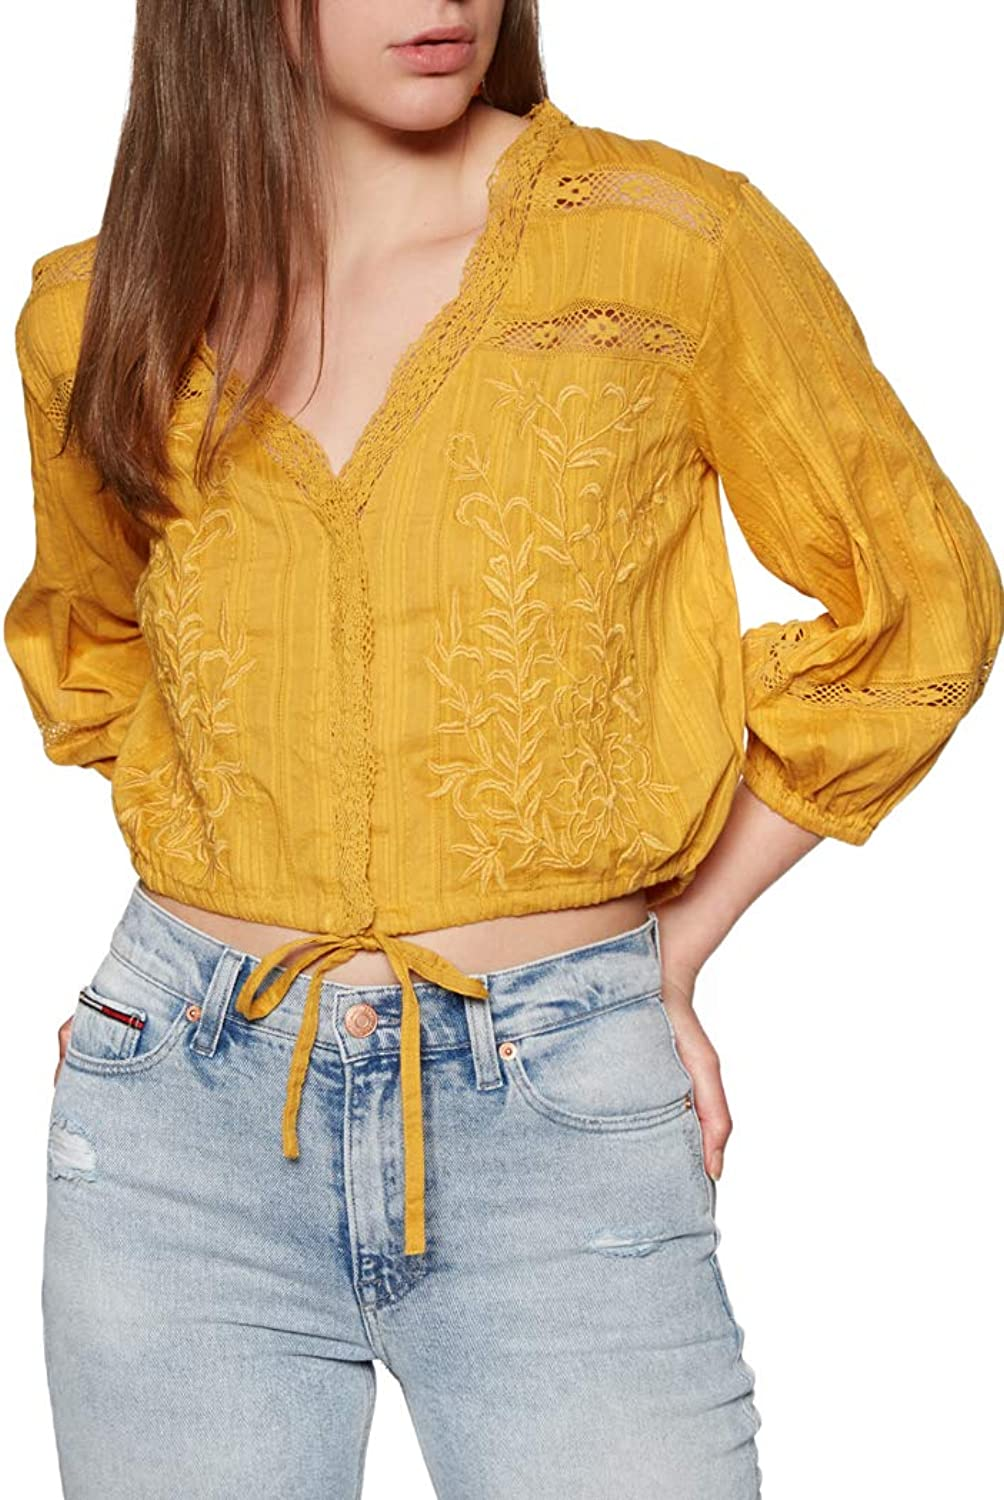 Free People Women's Follow Your Heart Top